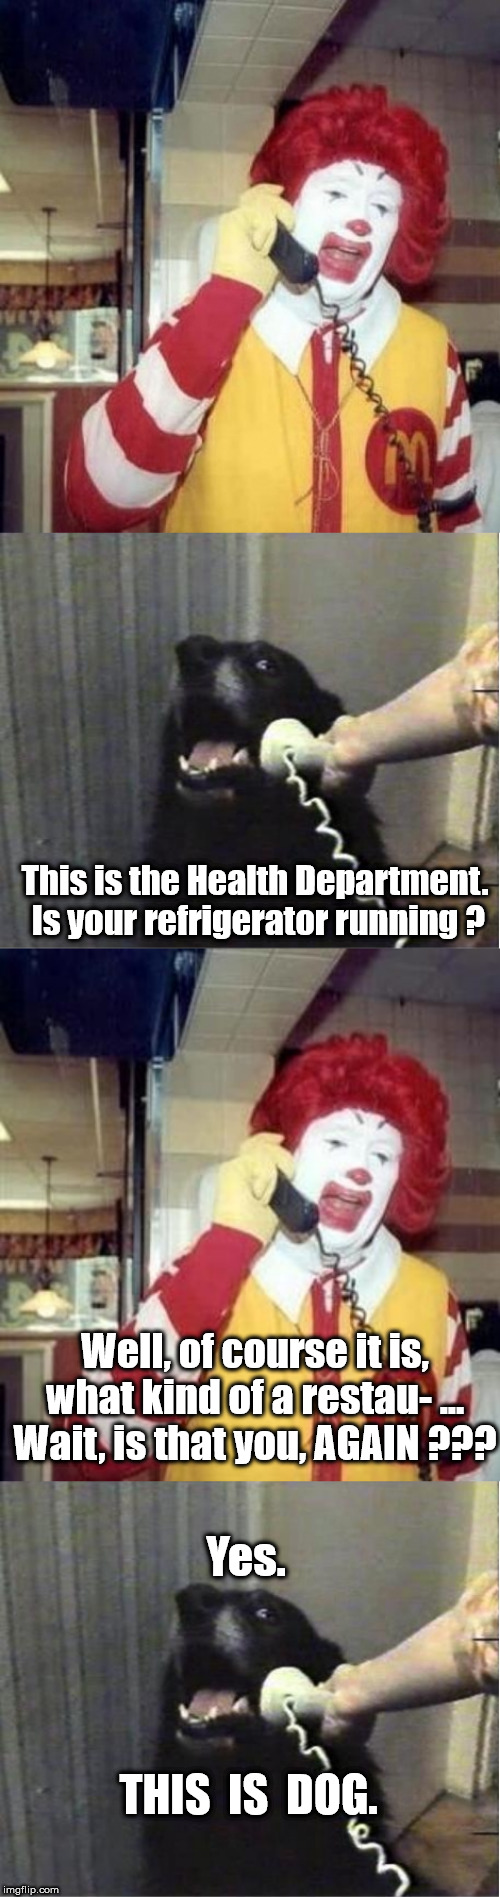 This is the Health Department.  Is your refrigerator running ? Well, of course it is, what kind of a restau- ... Wait, is that you, AGAIN ?? | image tagged in yes this is dog,ronald mcdonald temp,ronald mcdonald on the phone | made w/ Imgflip meme maker